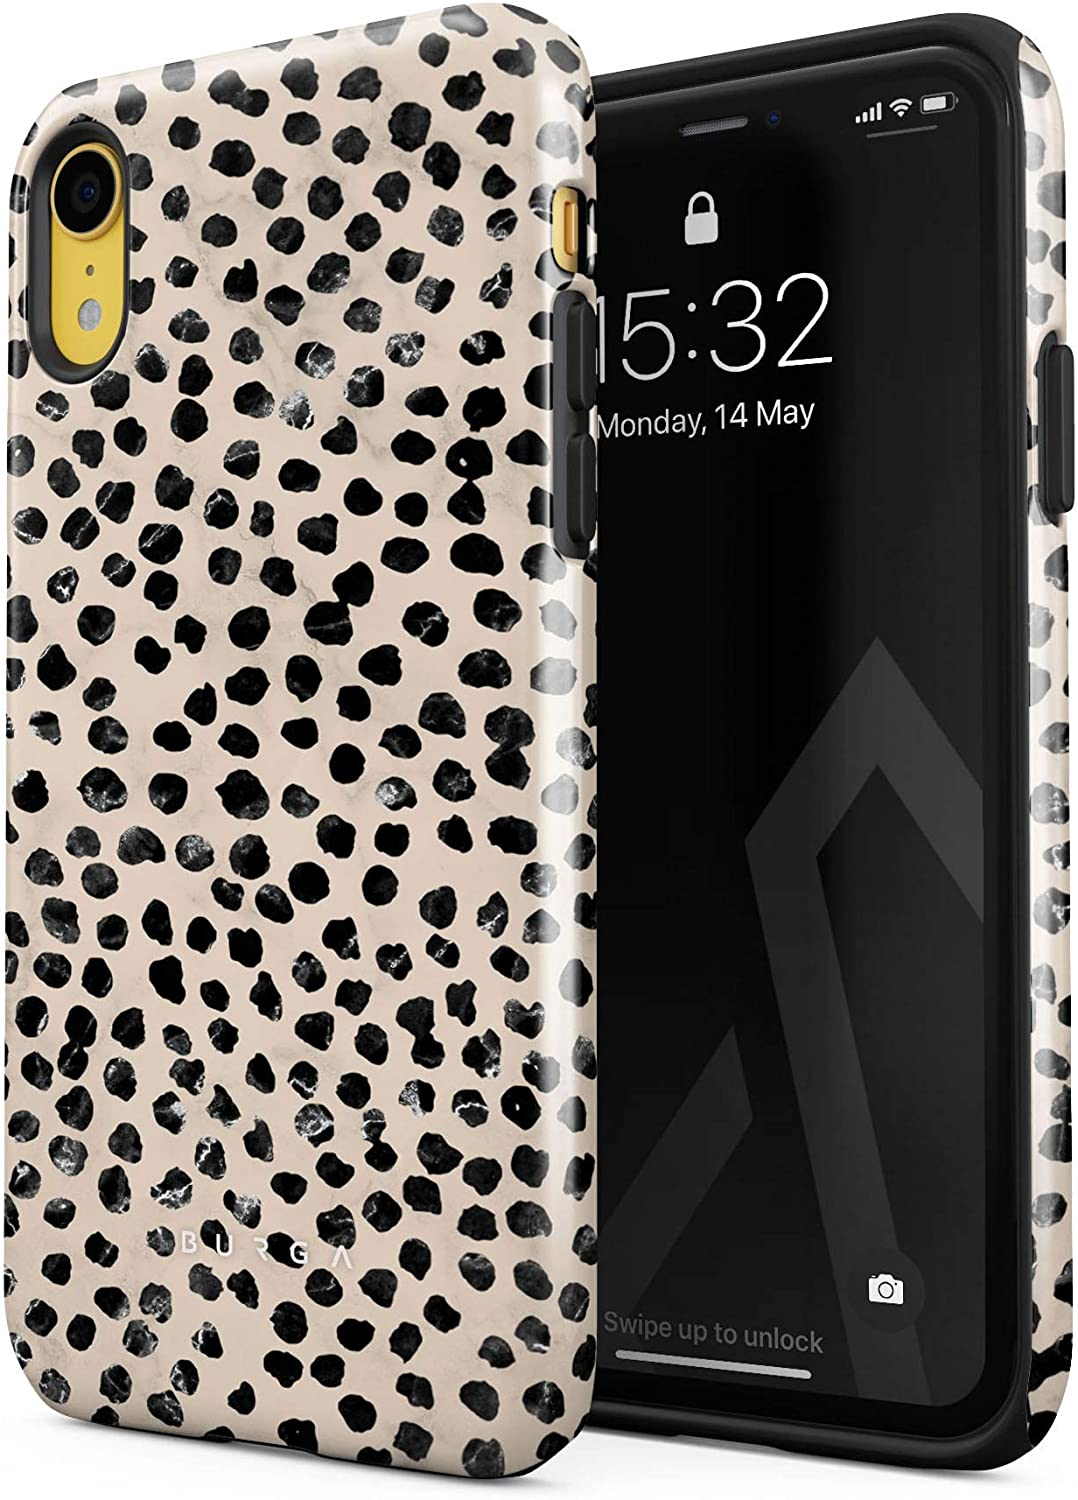 BURGA Phone Case Compatible with iPhone XR - Black Polka Dots Pattern Nude Almond Latte Fashion Cute for Girls Heavy Duty Shockproof Dual Layer Hard Shell + Silicone Protective Cover